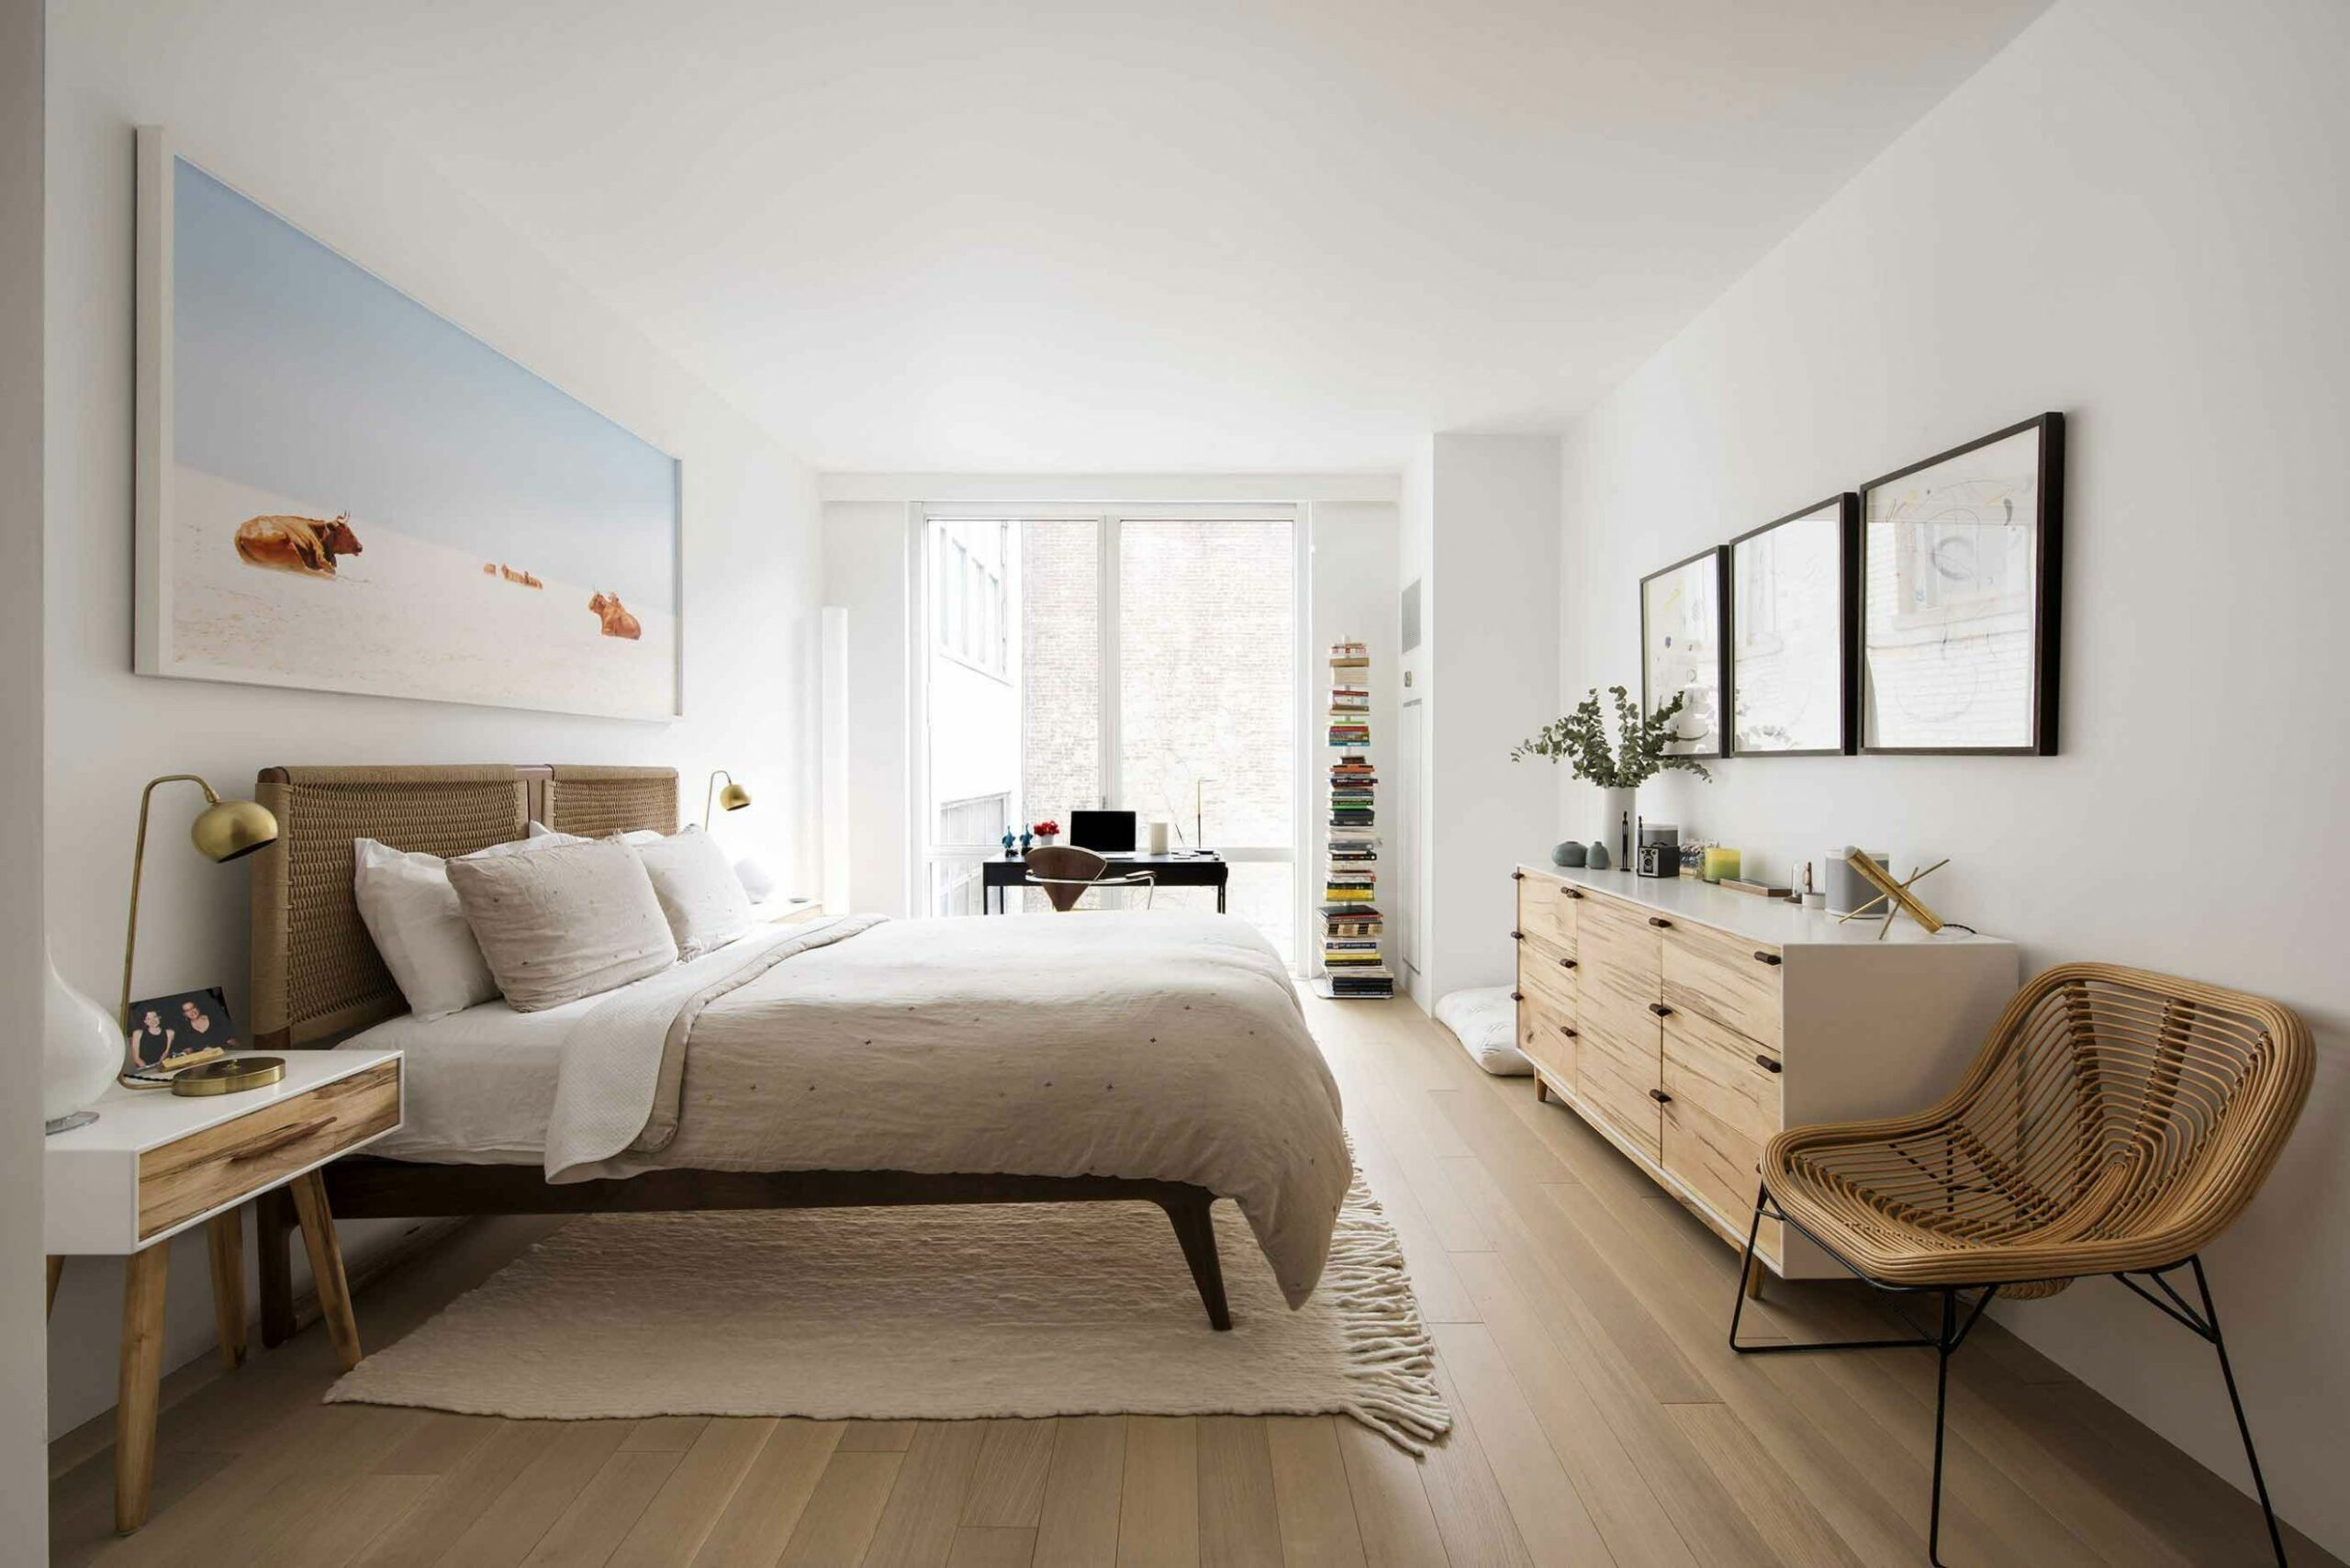 Urban Modern Bedroom Ideas for Your Home - bedroom ideas pictures